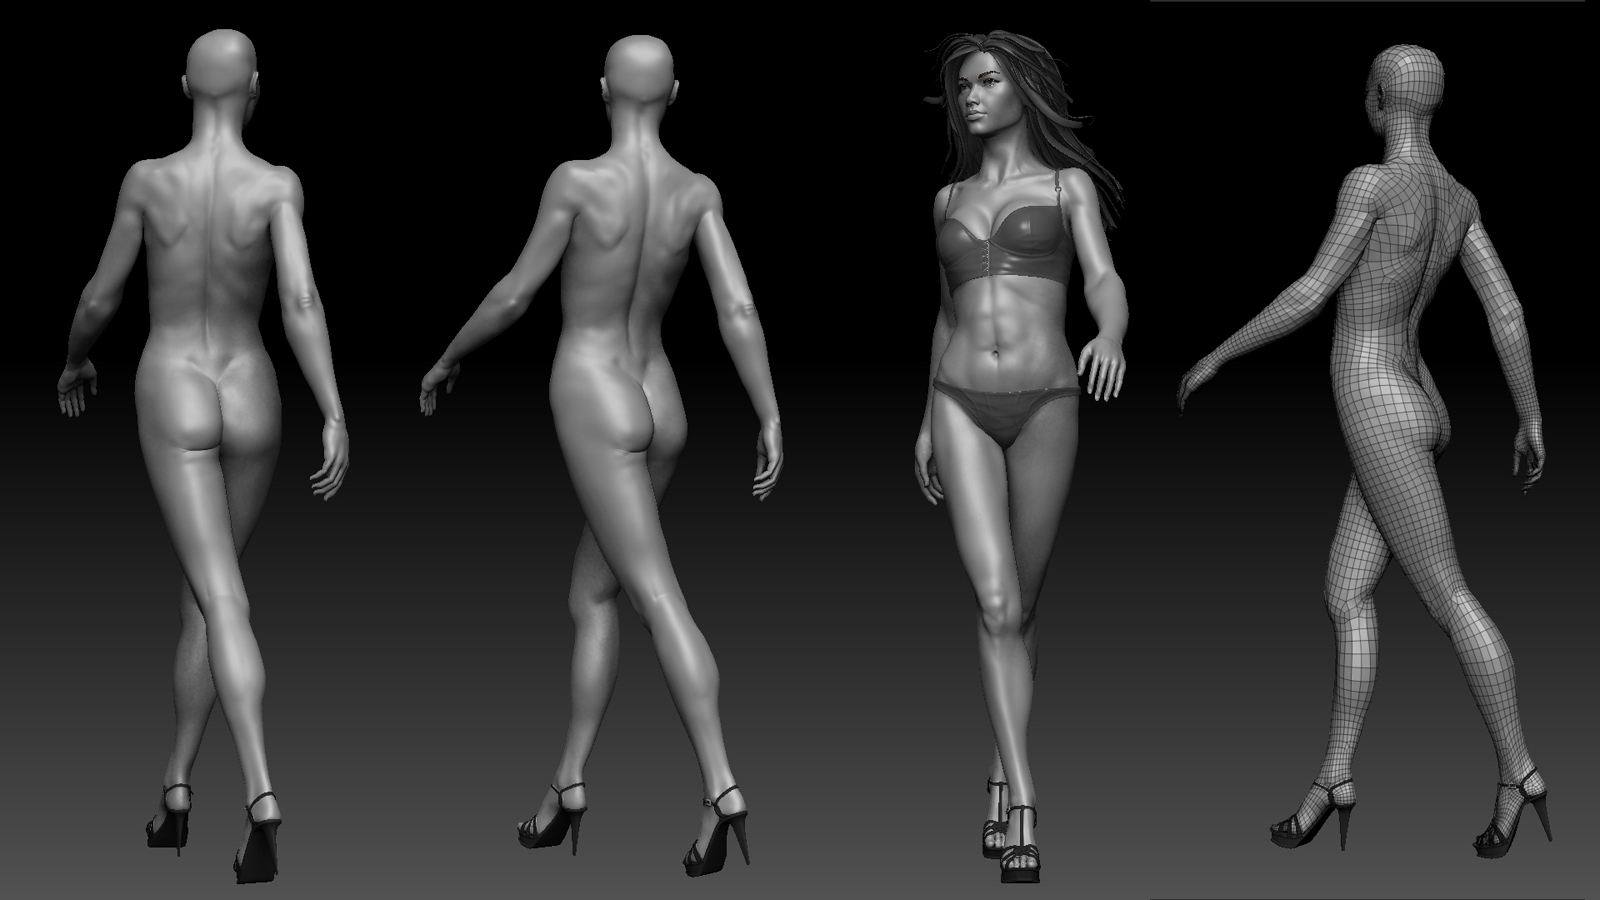 adriana_screenshots  comp_full_figure_back.jpg